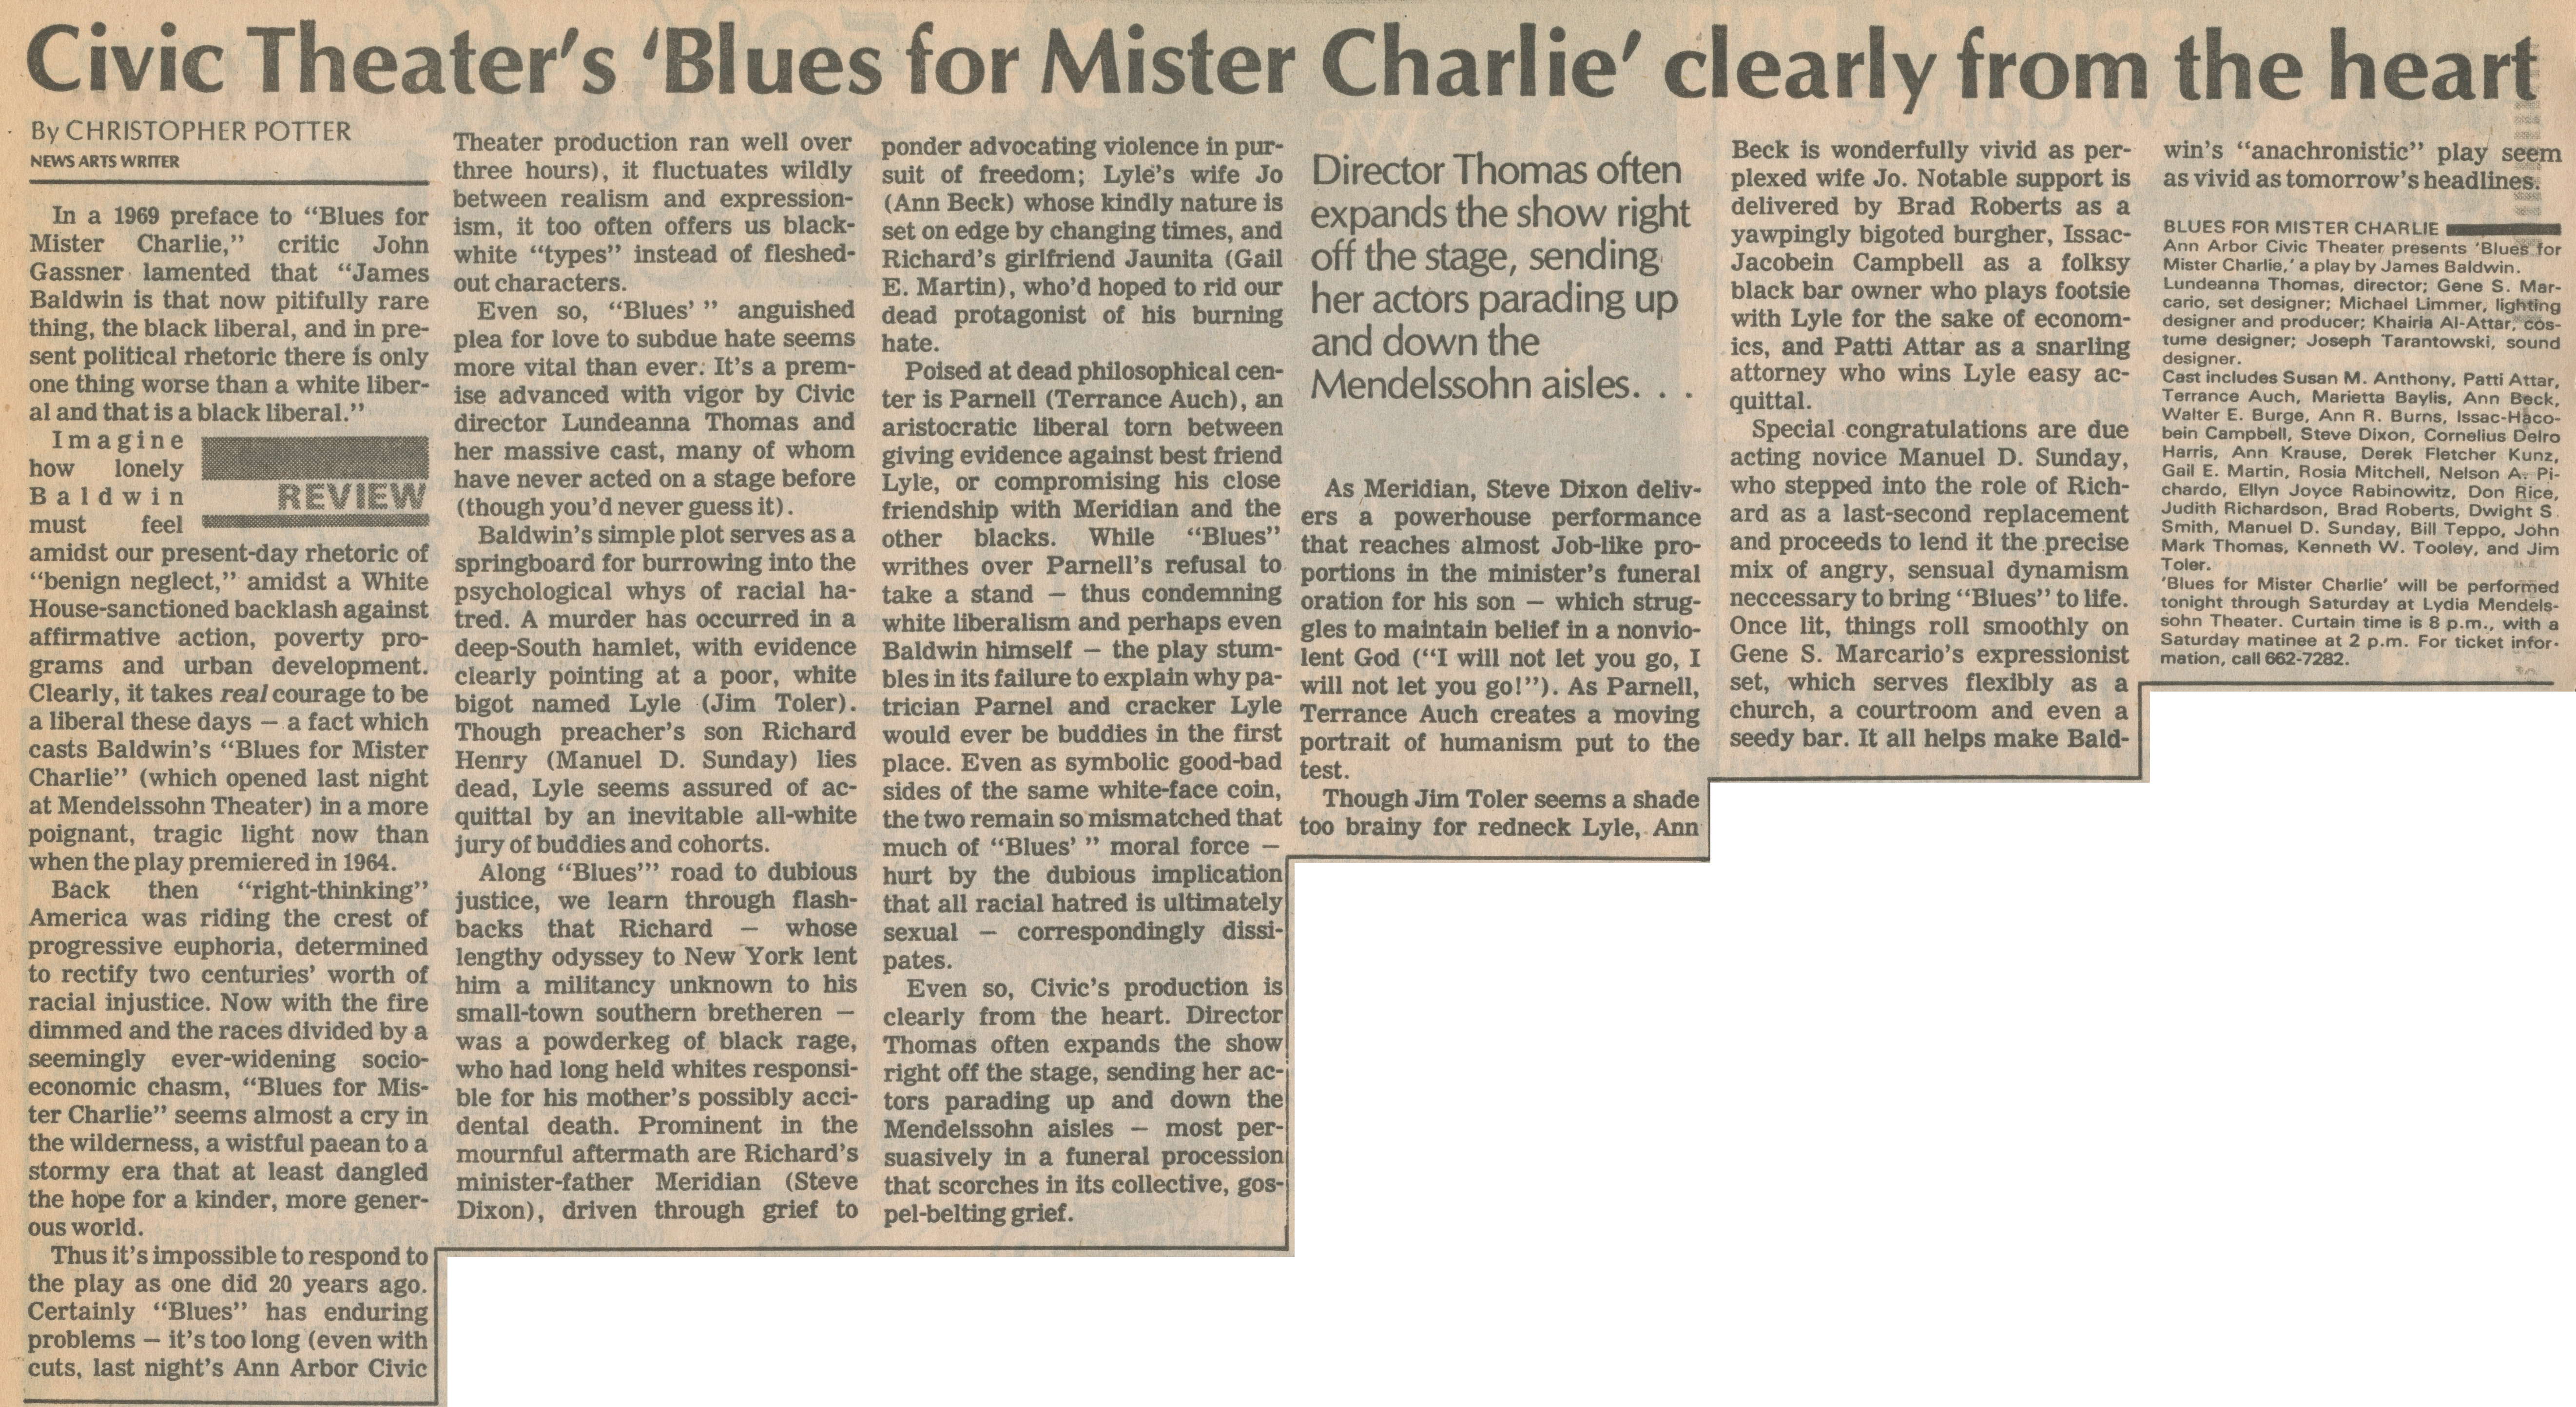 Civic Theater's 'Blues For Mister Charlie' Clearly From The Heart image